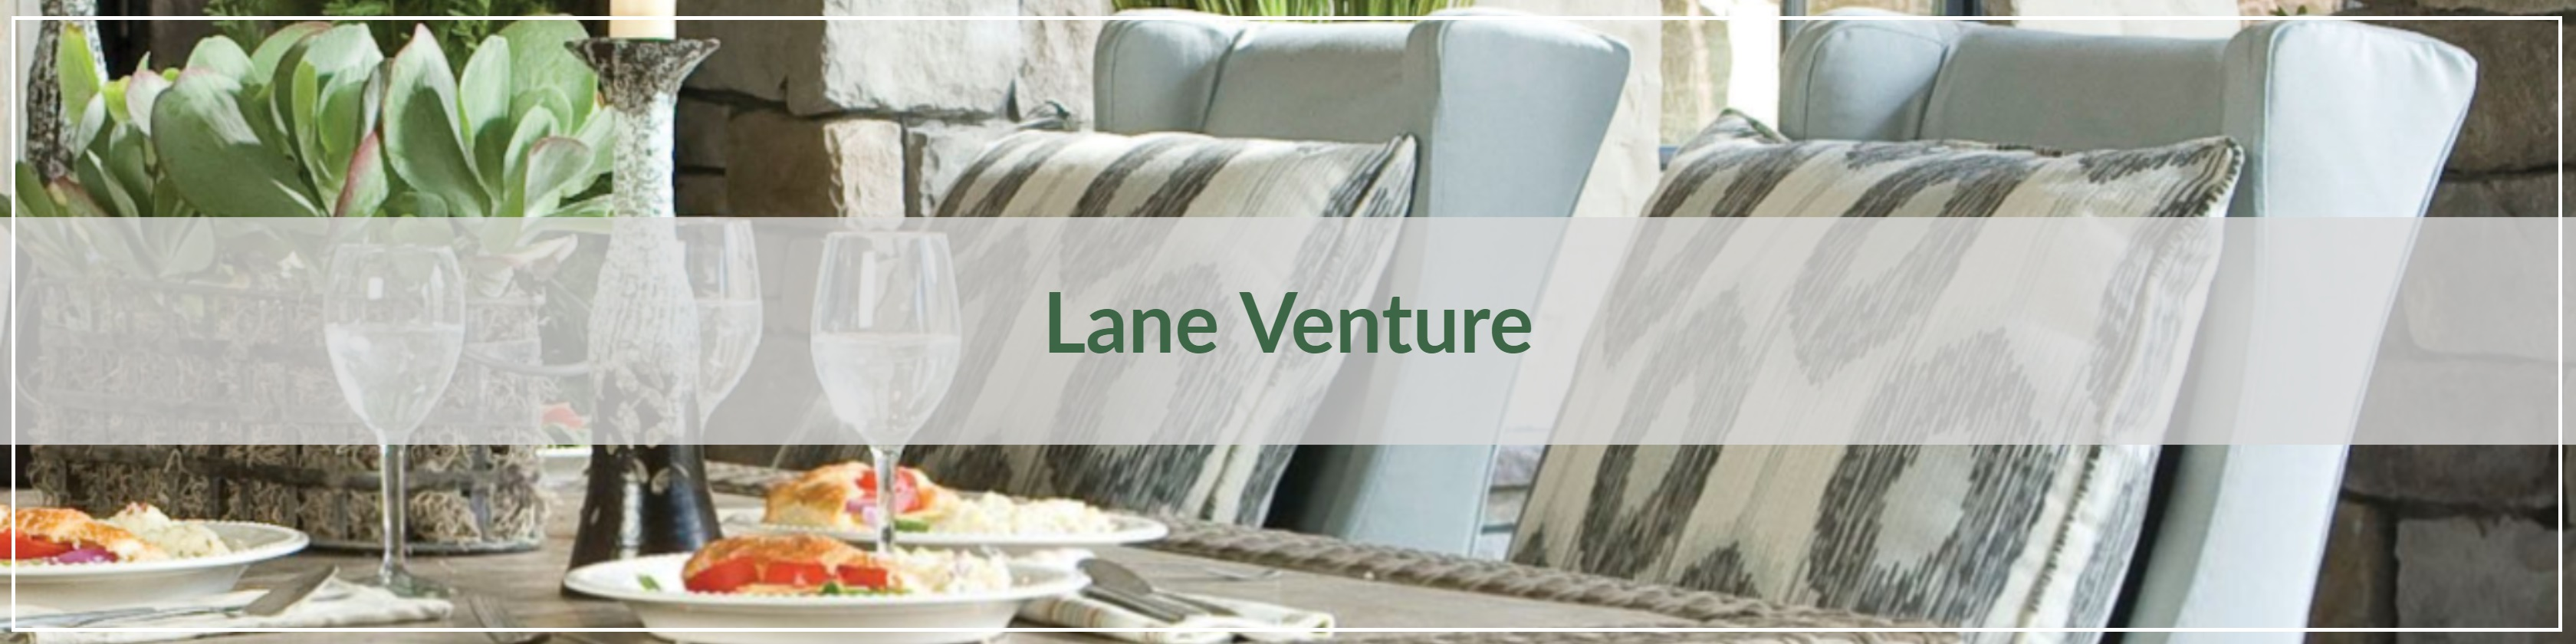 Lane Venture Upholstery Outdoor Dining